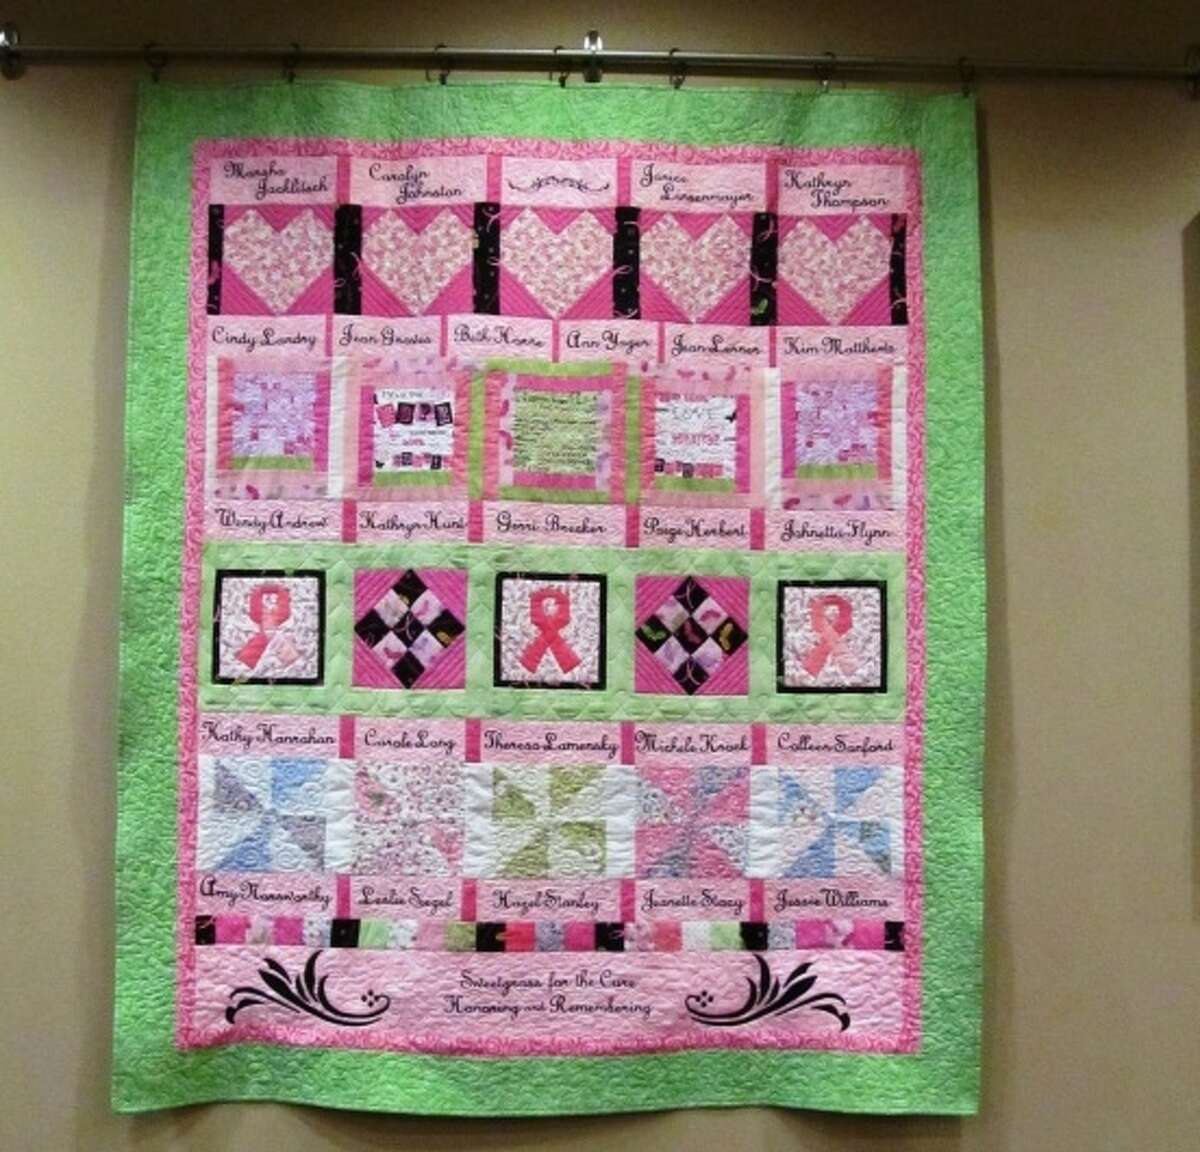 This quilt was handcrafted by two Sweetgrass residents to honor and remember Sweetgrass residents who have battled breast cancer. The quilt raised $650 for Susan G. Komen for the Cure.